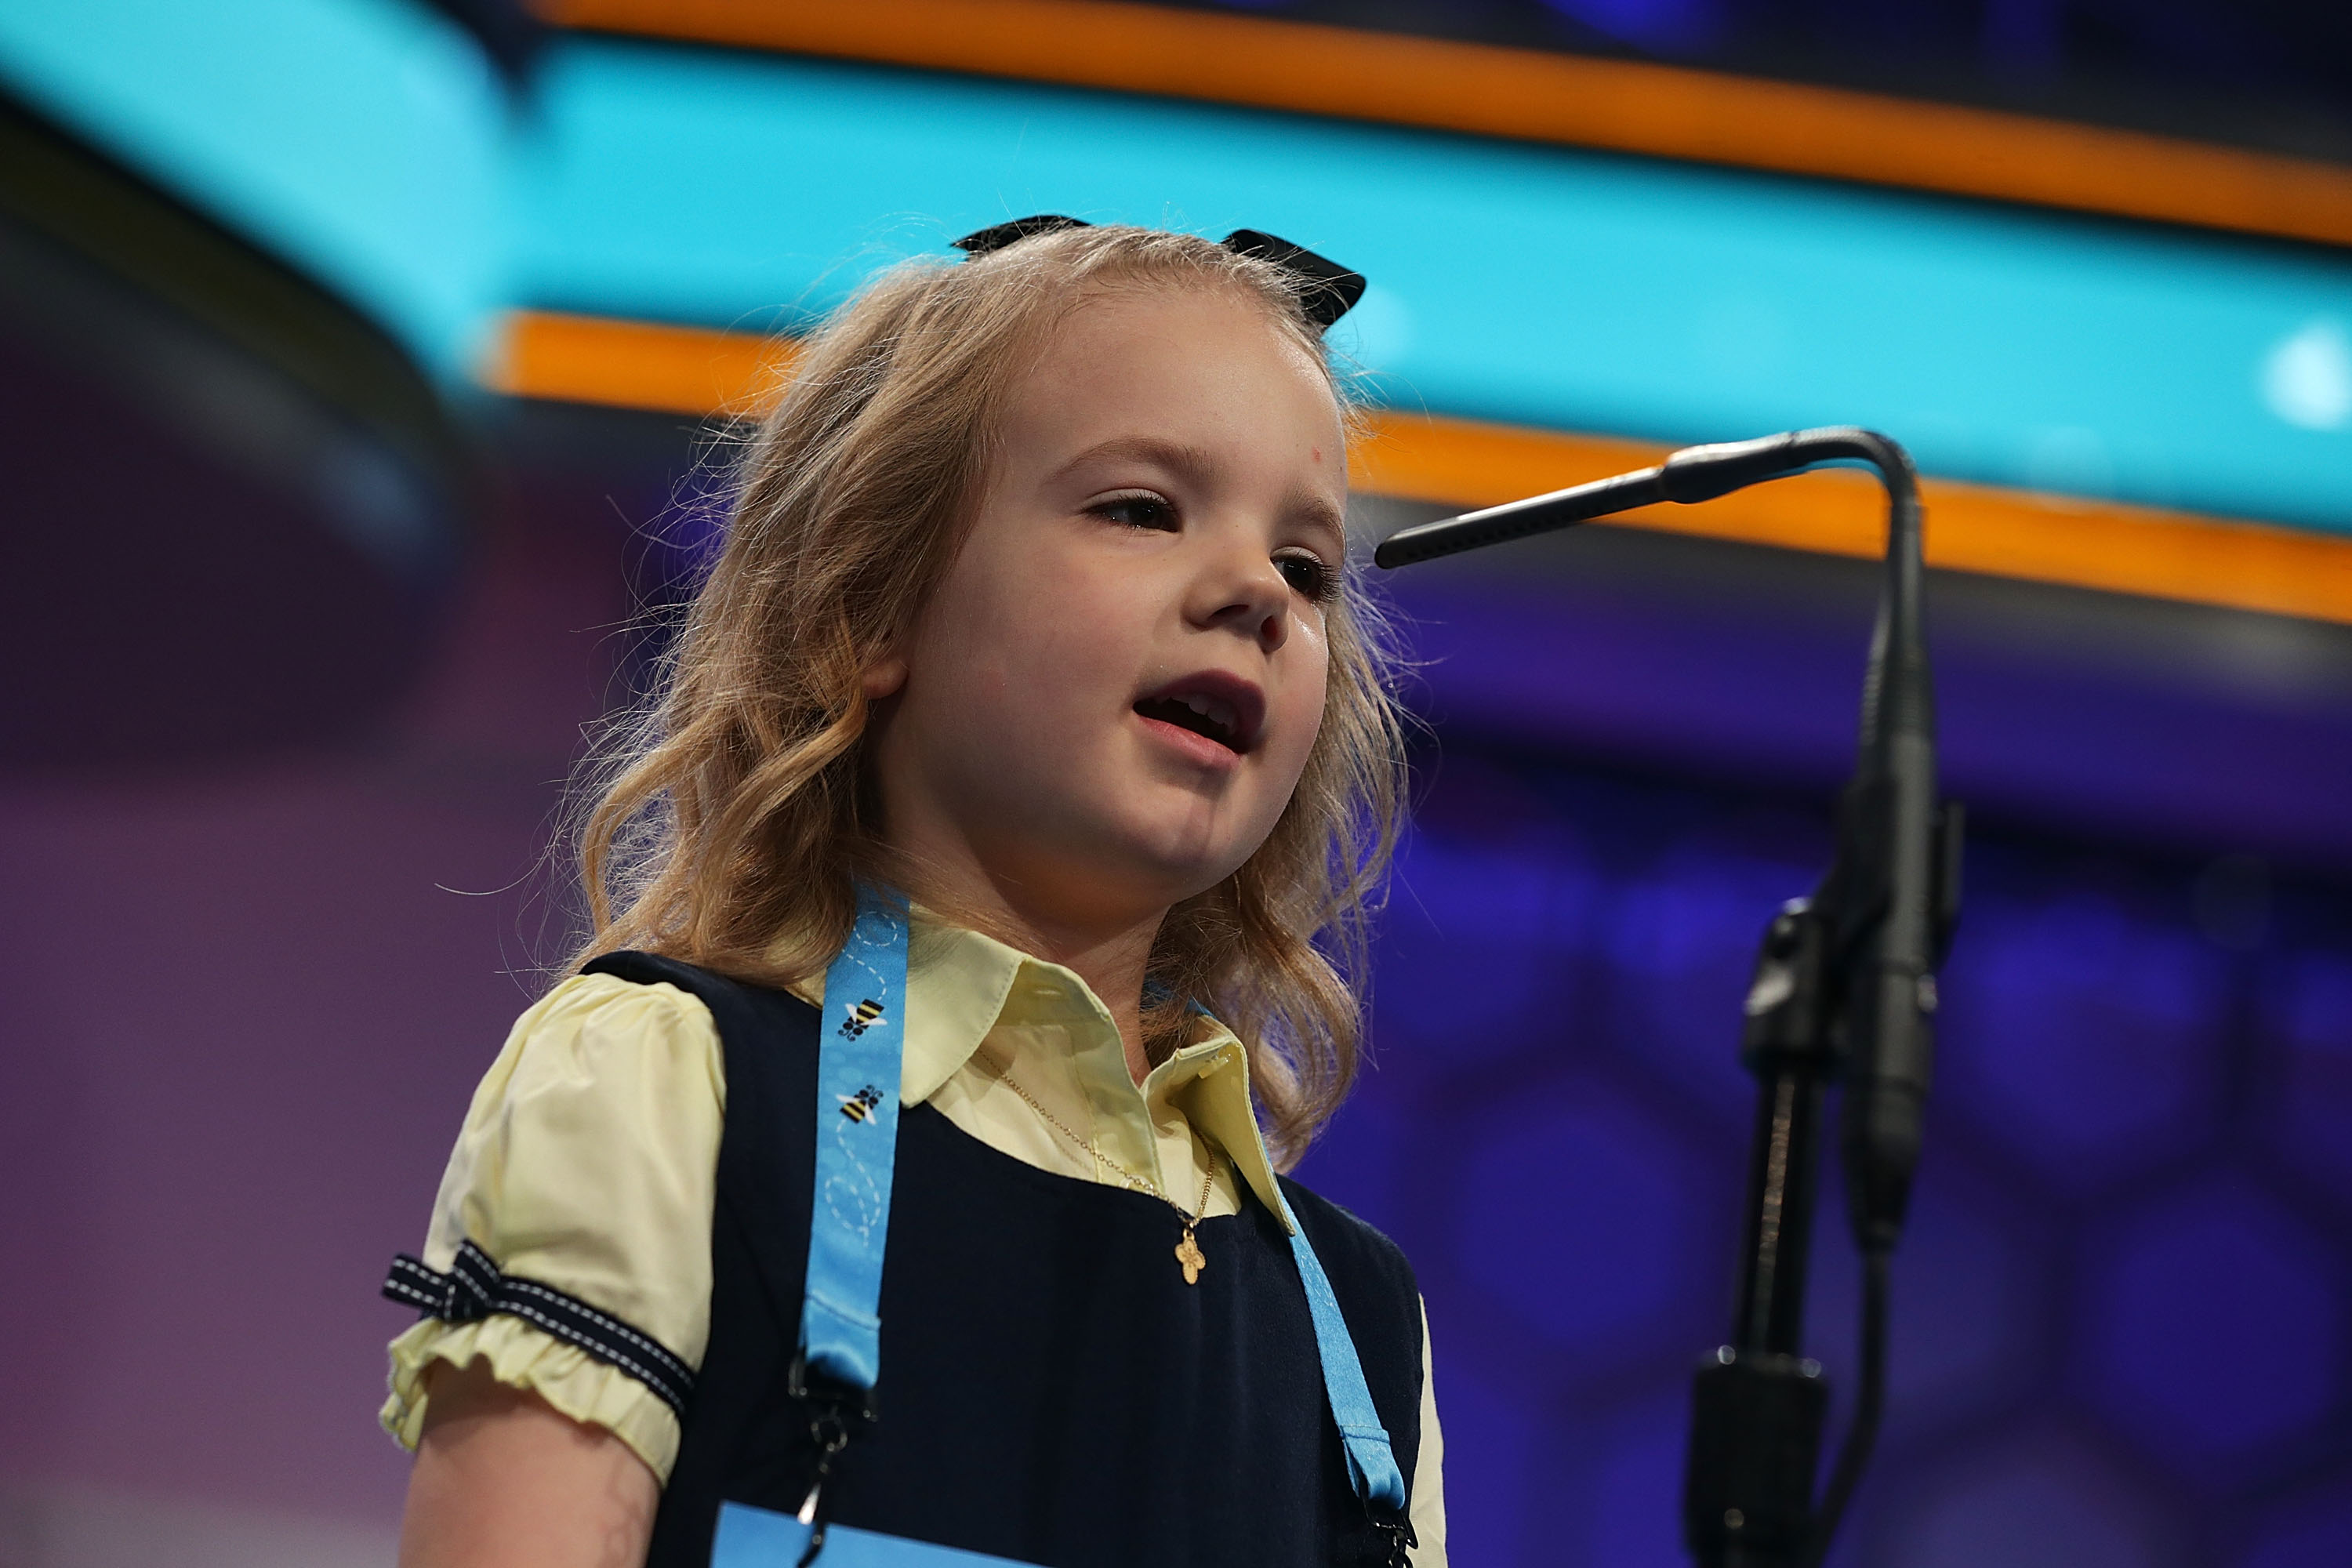 Edith Fuller of Tulsa, Oklahoma, who is the youngest speller this year, spells her word during round two of 2017 Scripps National Spelling Bee at Gaylord National Resort & Convention Center May 31, 2017 in National Harbor, Maryland.